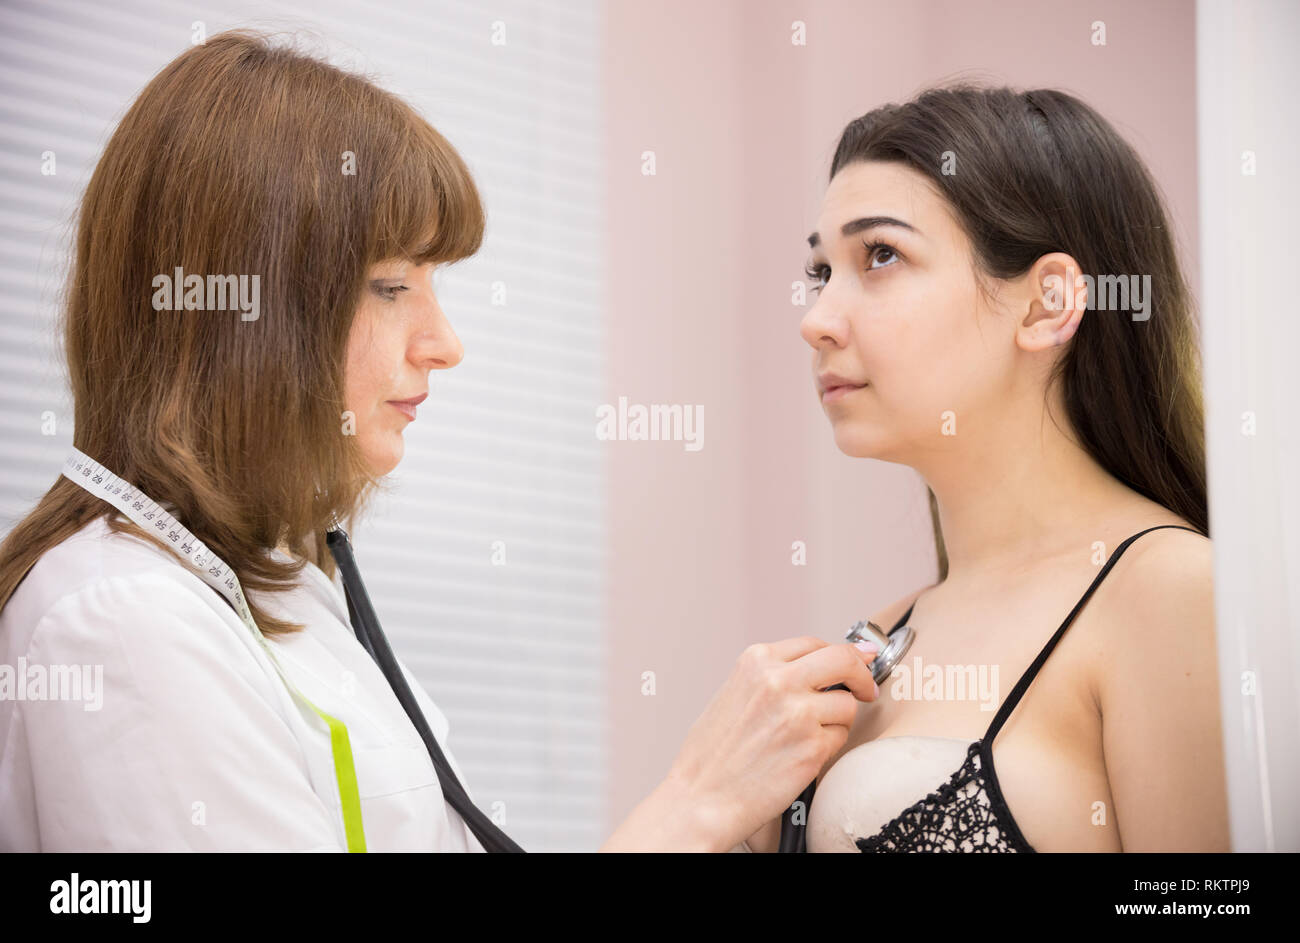 cosmetology beauty clinic. doctor hearing patient's heart beating - Stock Image